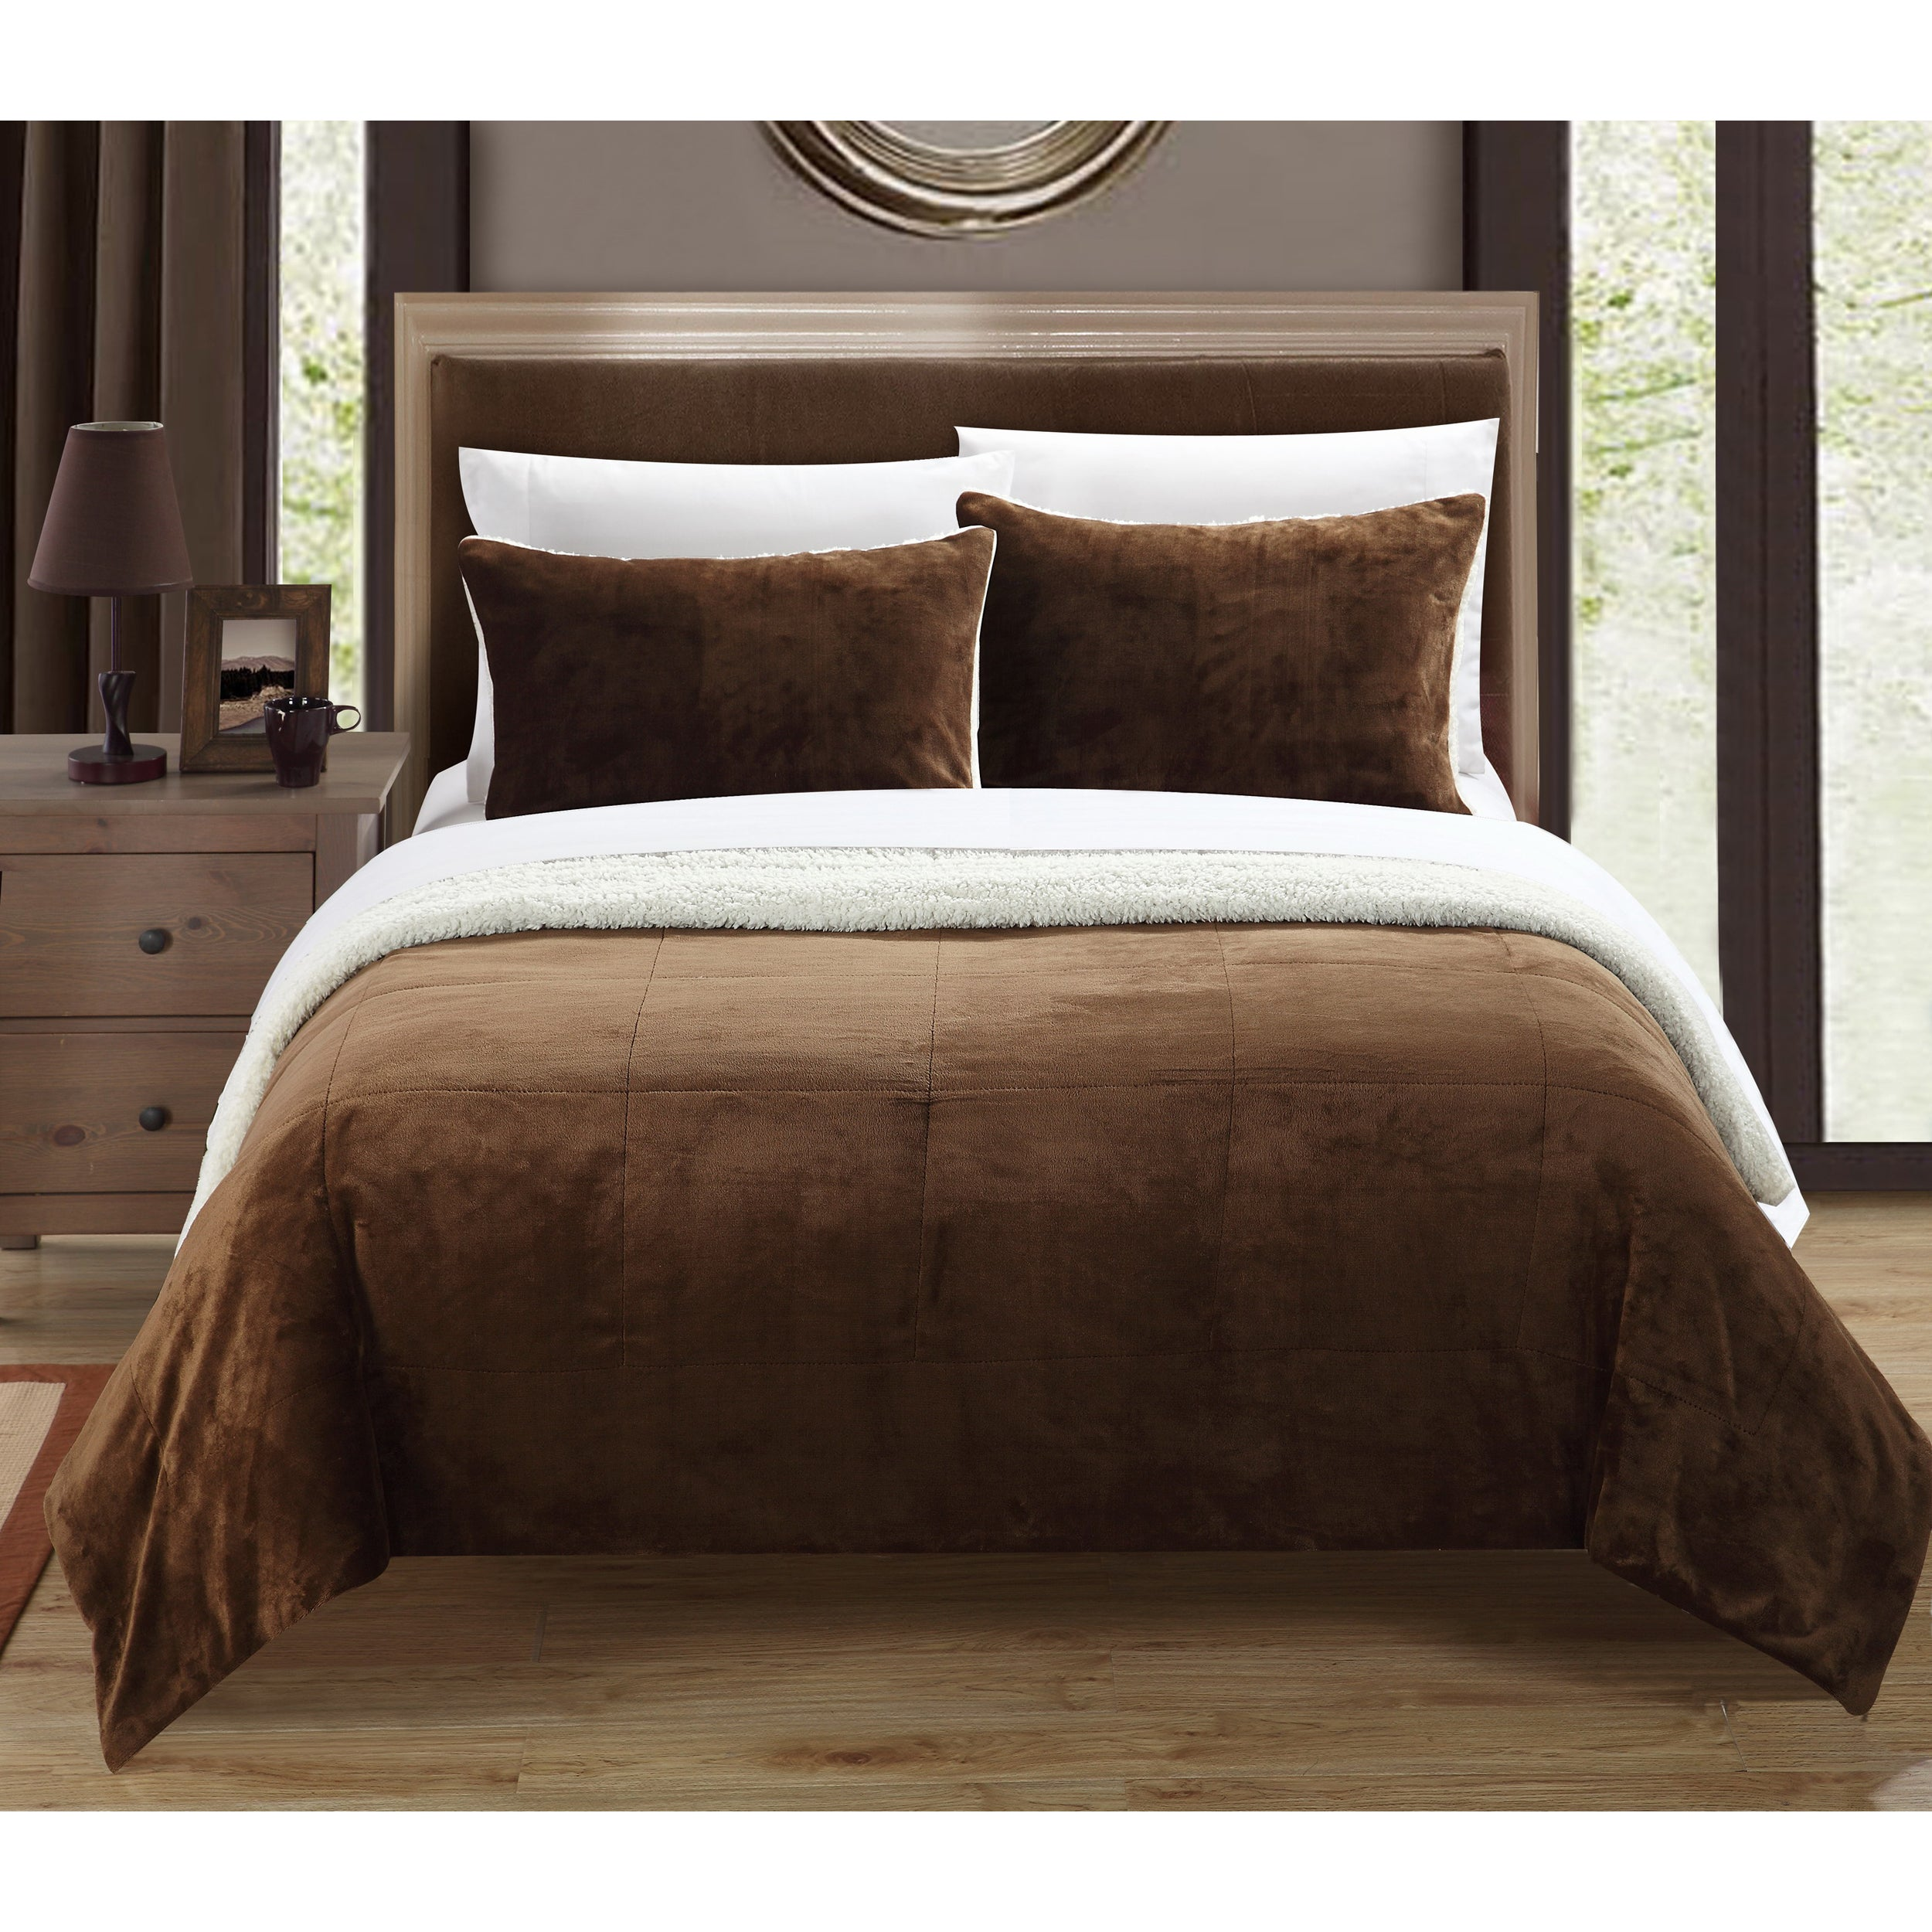 null beds bedroom allen size di micro queen suede shop bed furniture frames us ethan king front en comforter